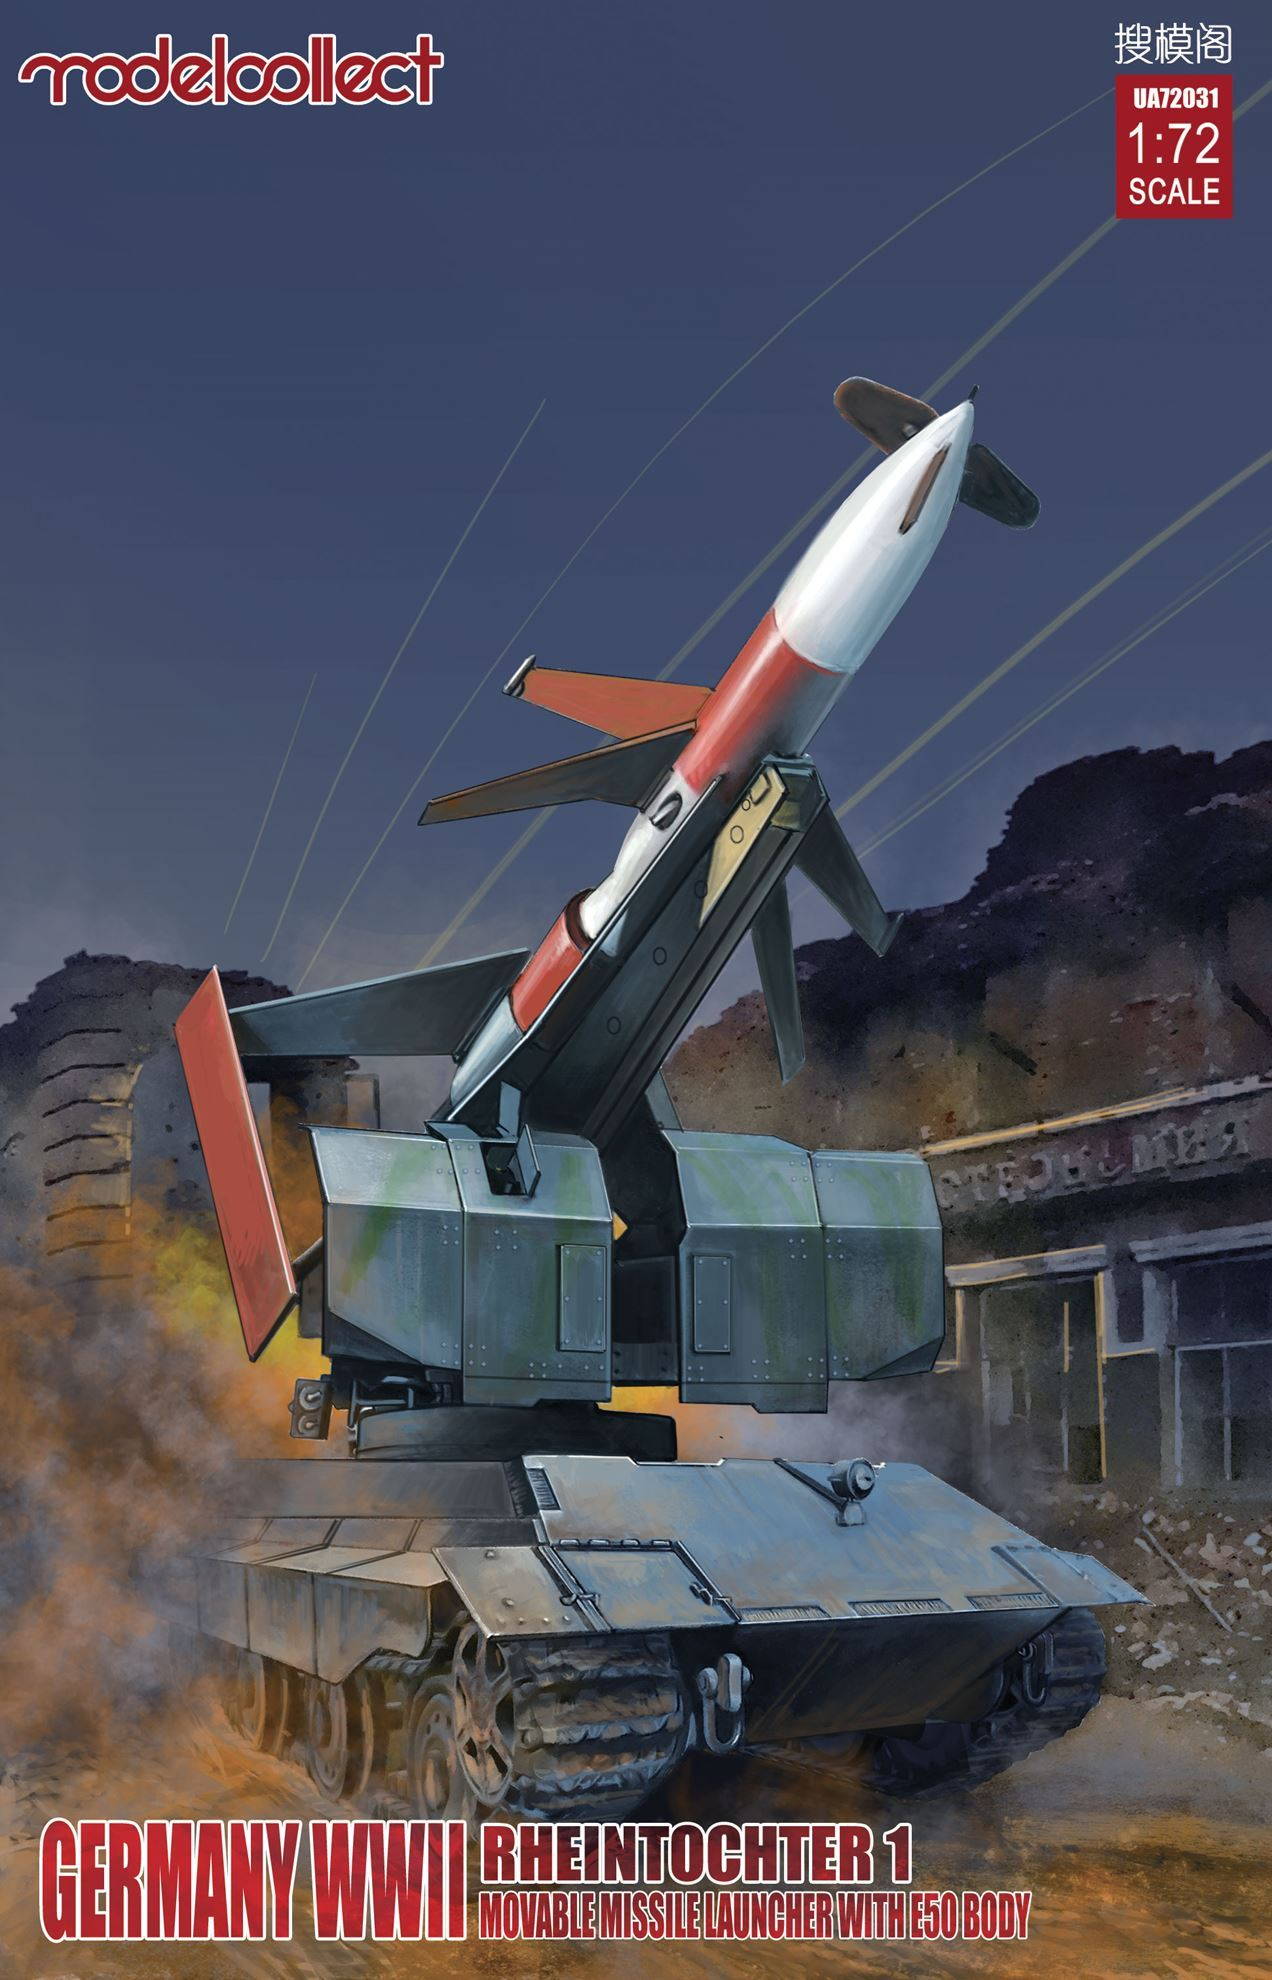 Germany Rheintochter 1 - Movable Missile launcher with E50 body